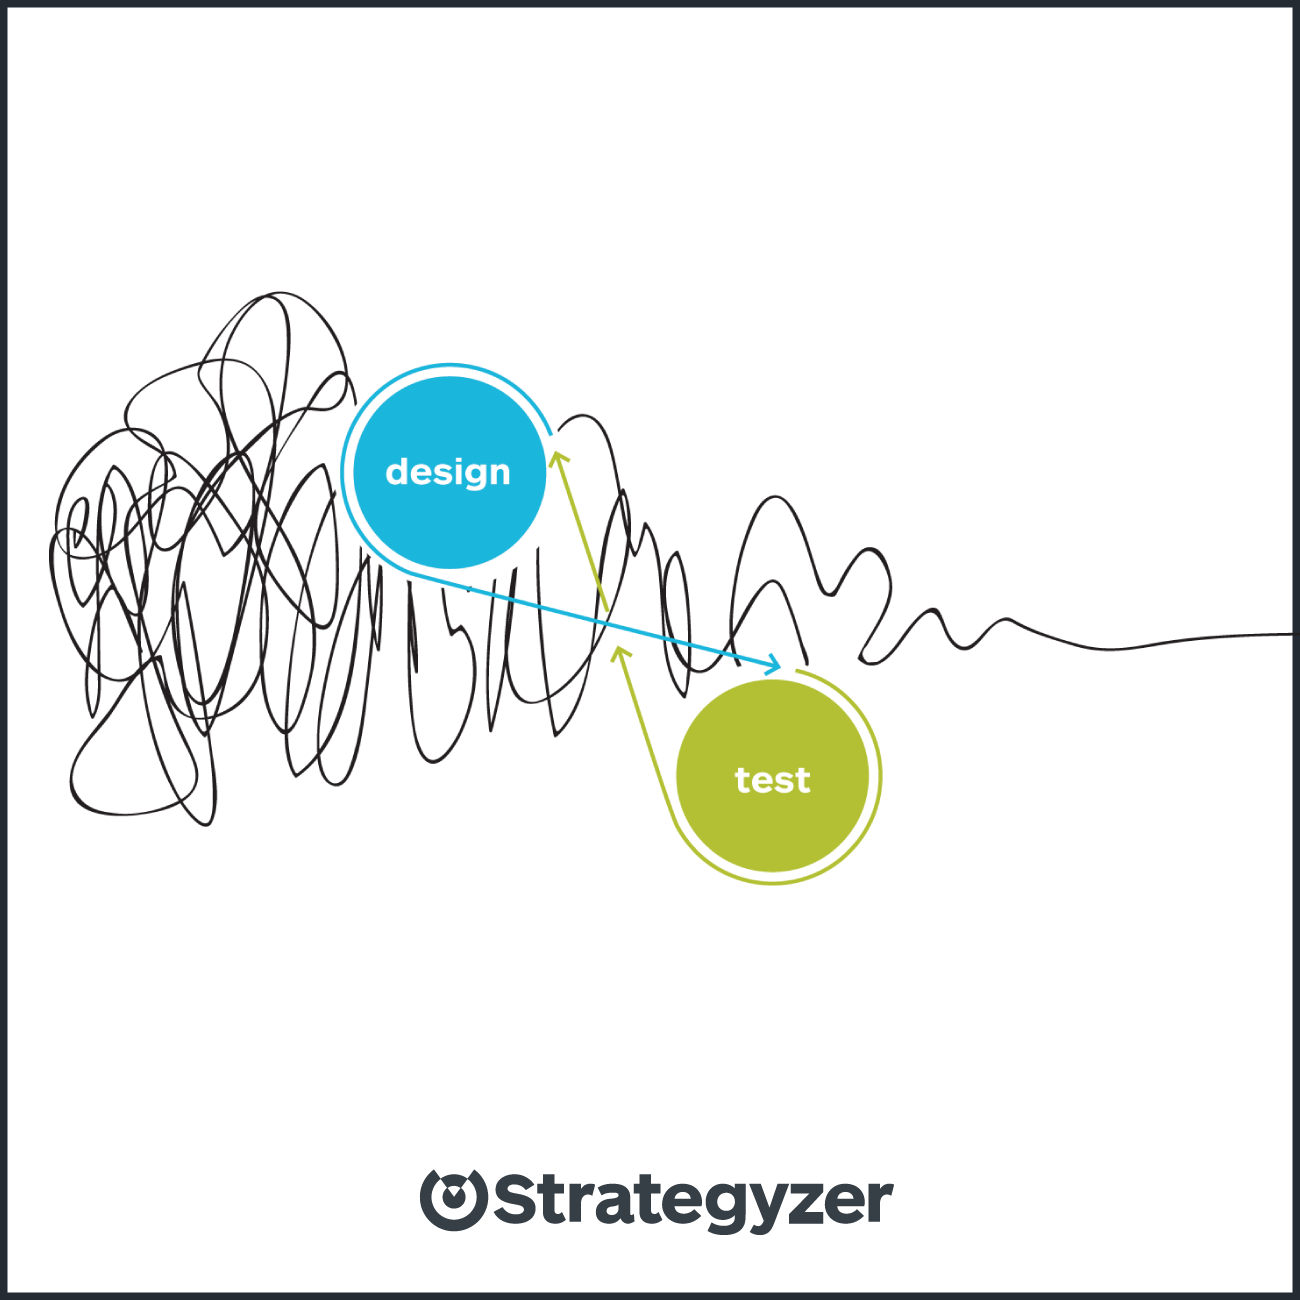 strategyzer-blog-book-visual-4.png